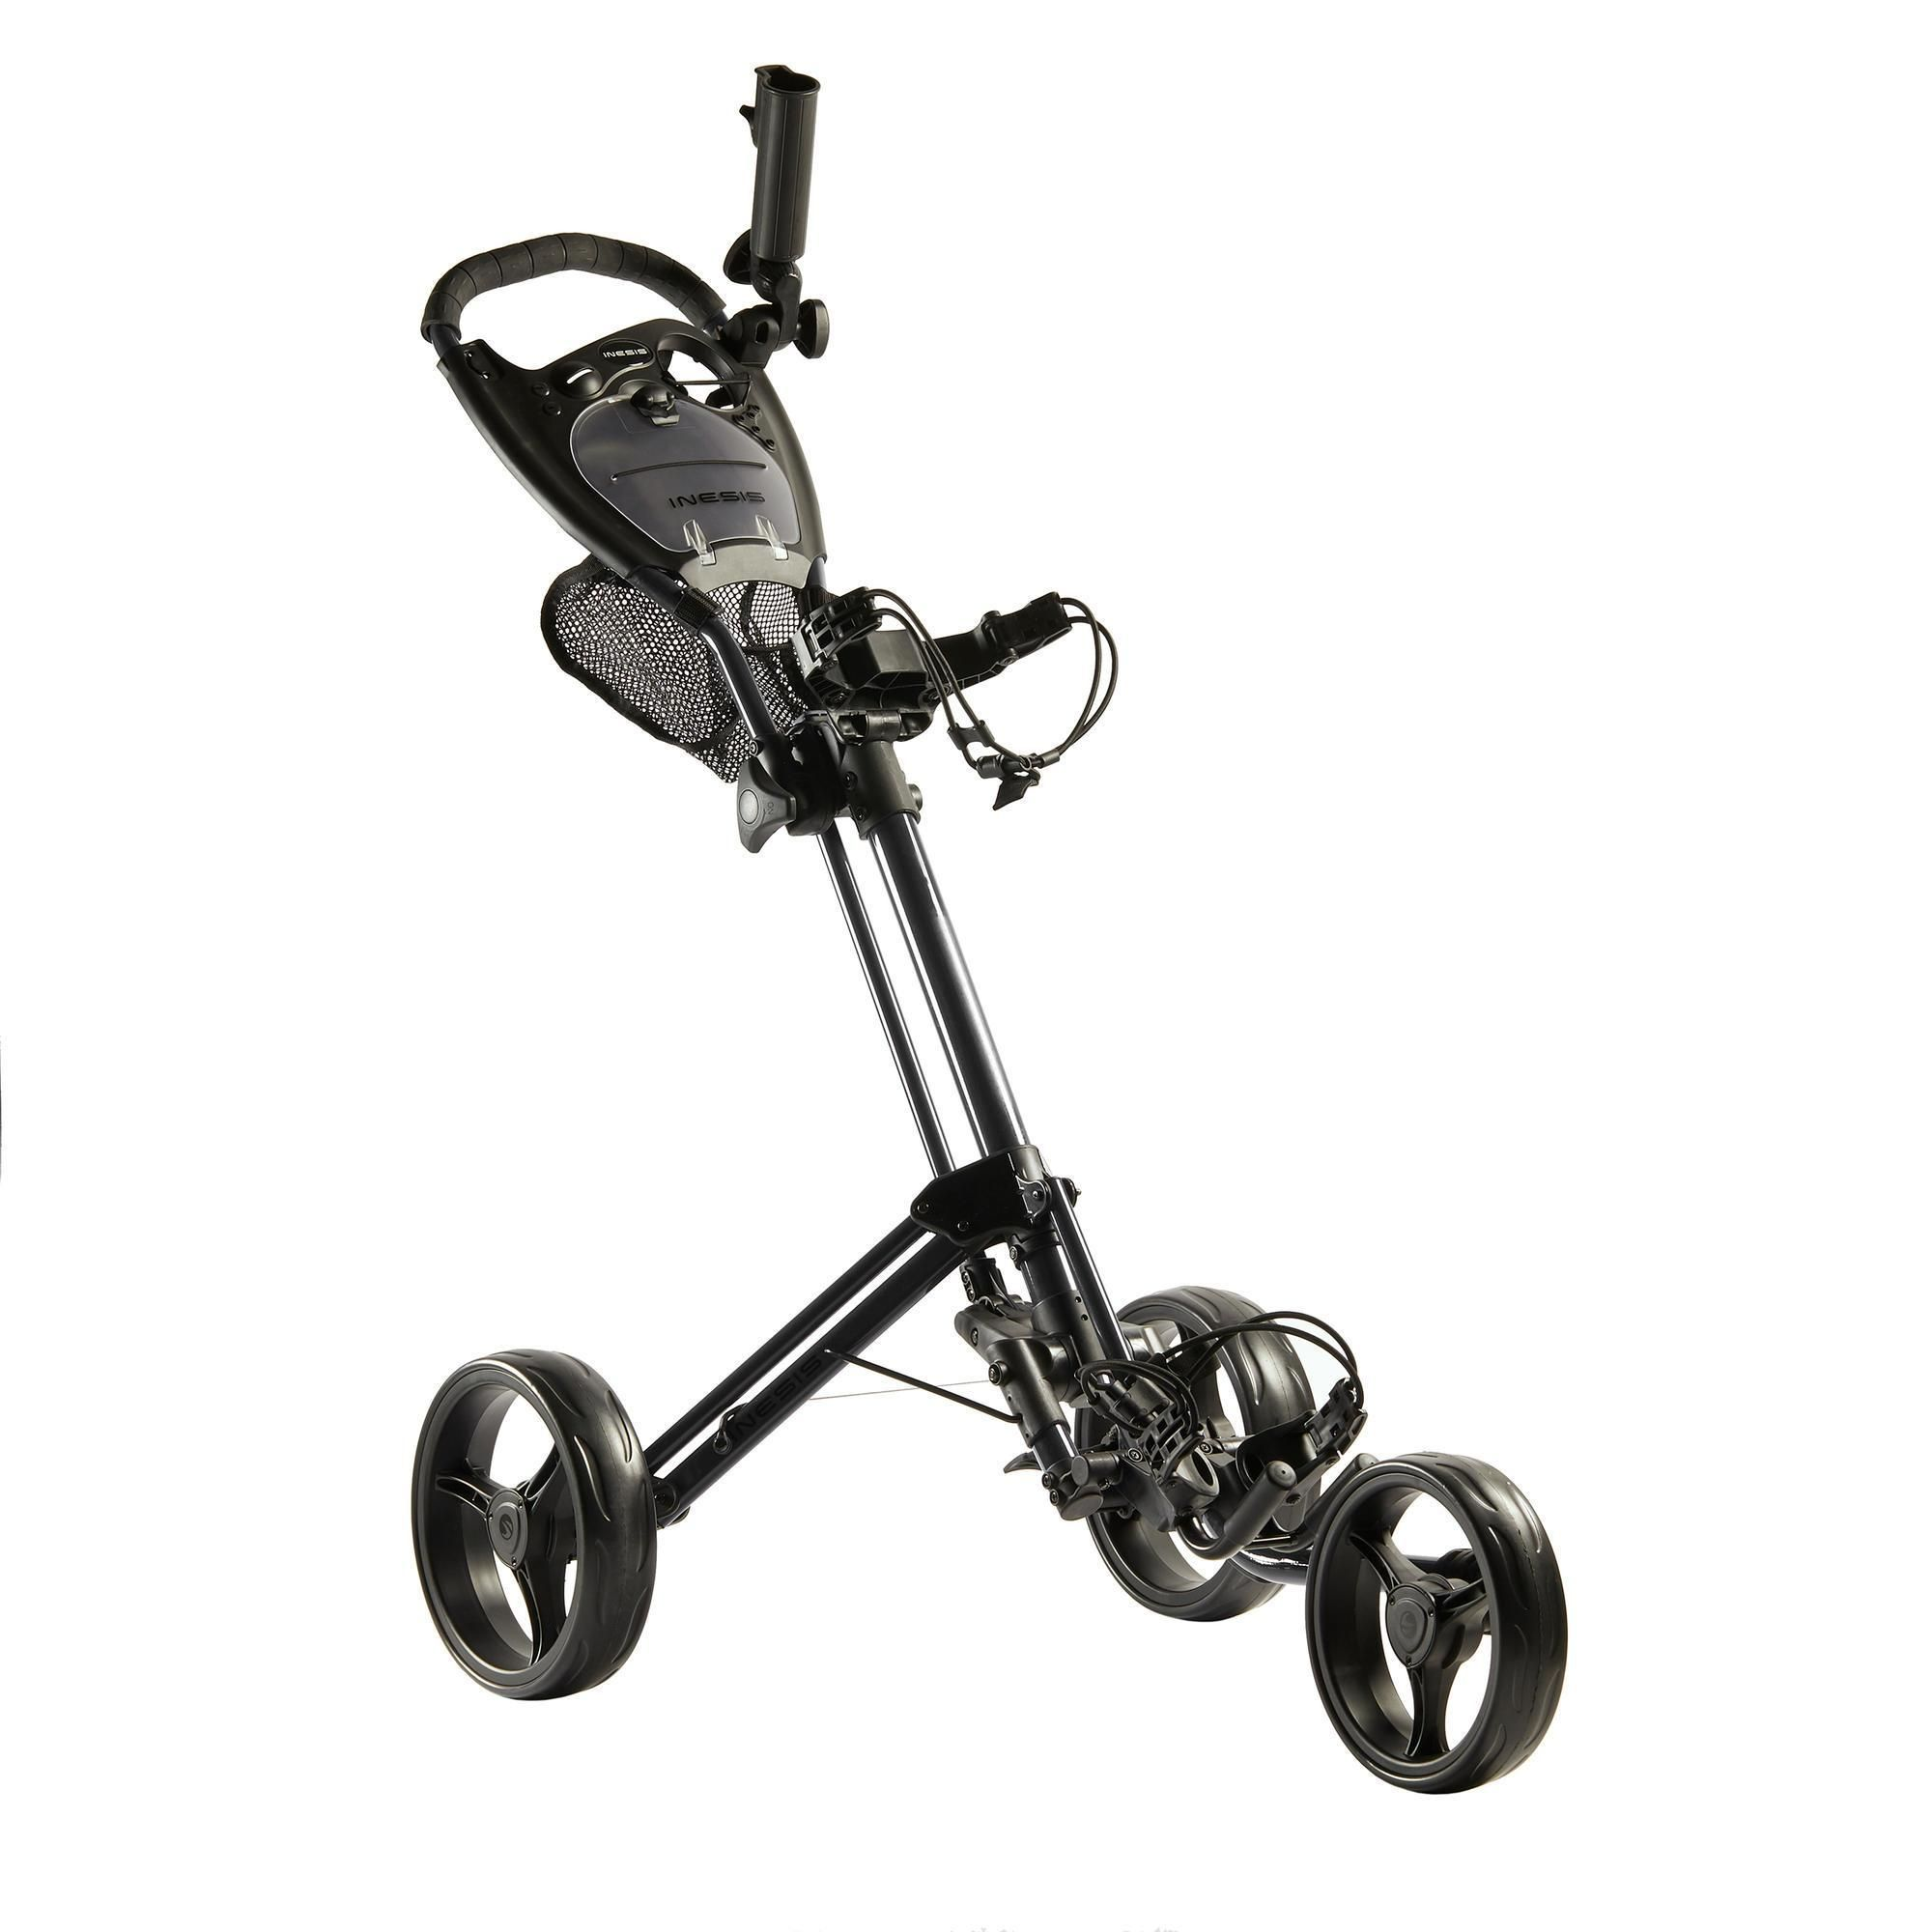 20+ Chariot golf 3 roues ideas